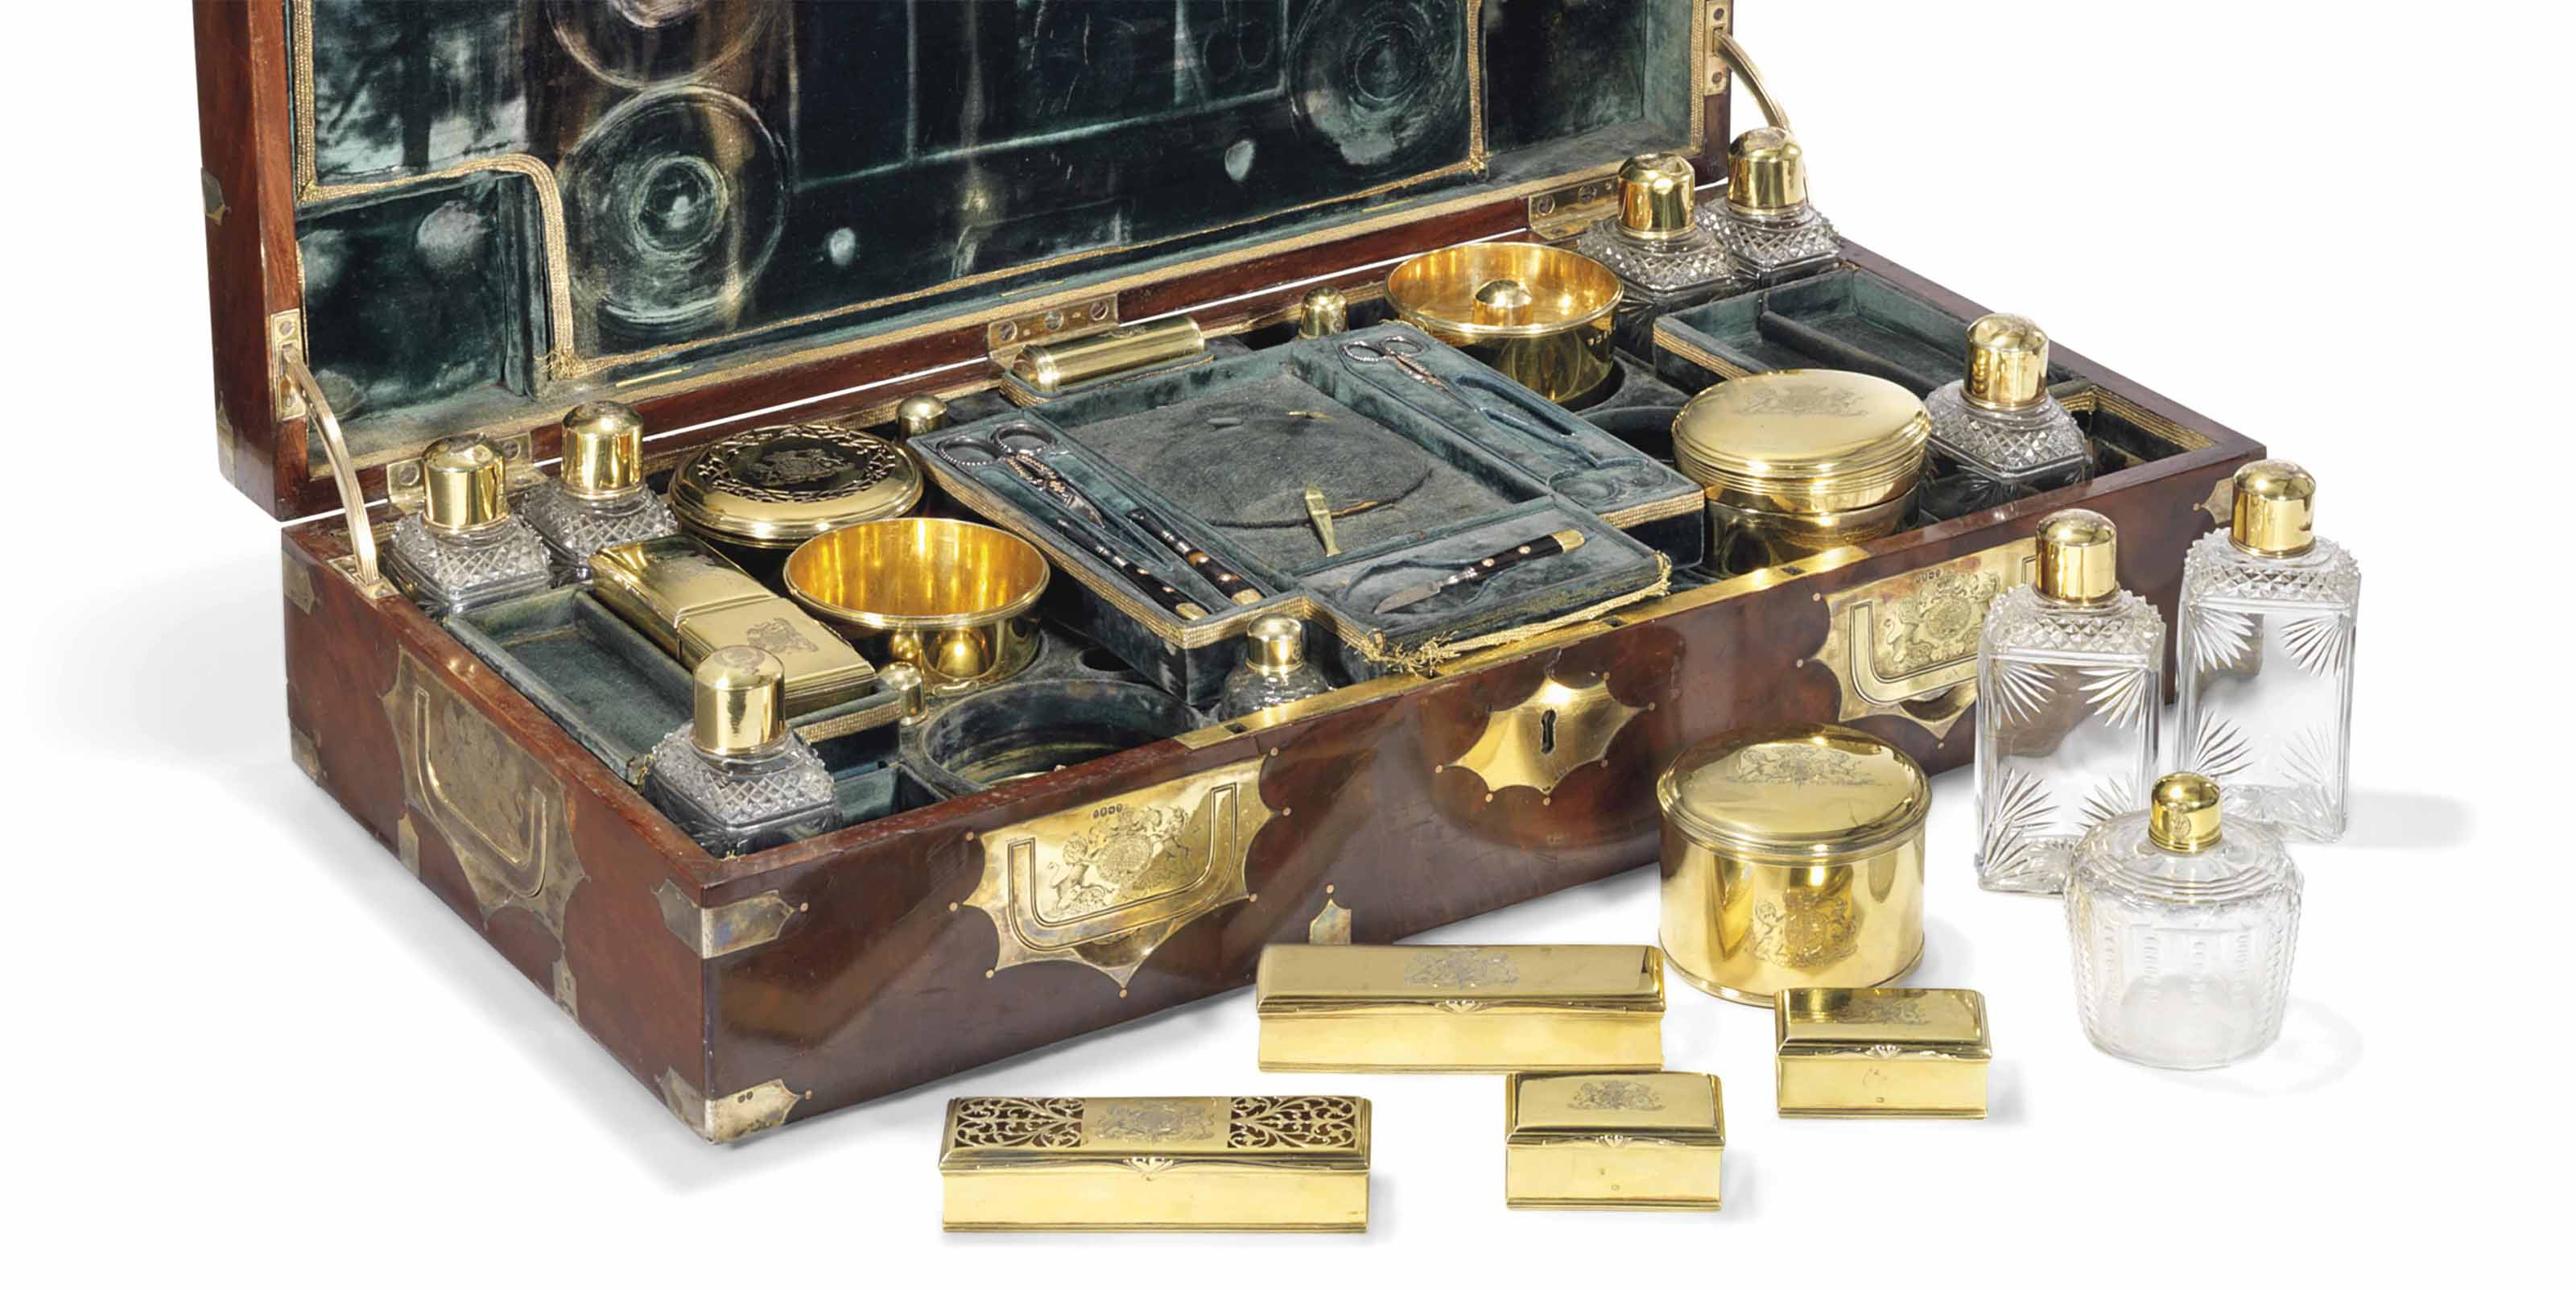 A GEORGE III SILVER-GILT TRAVE